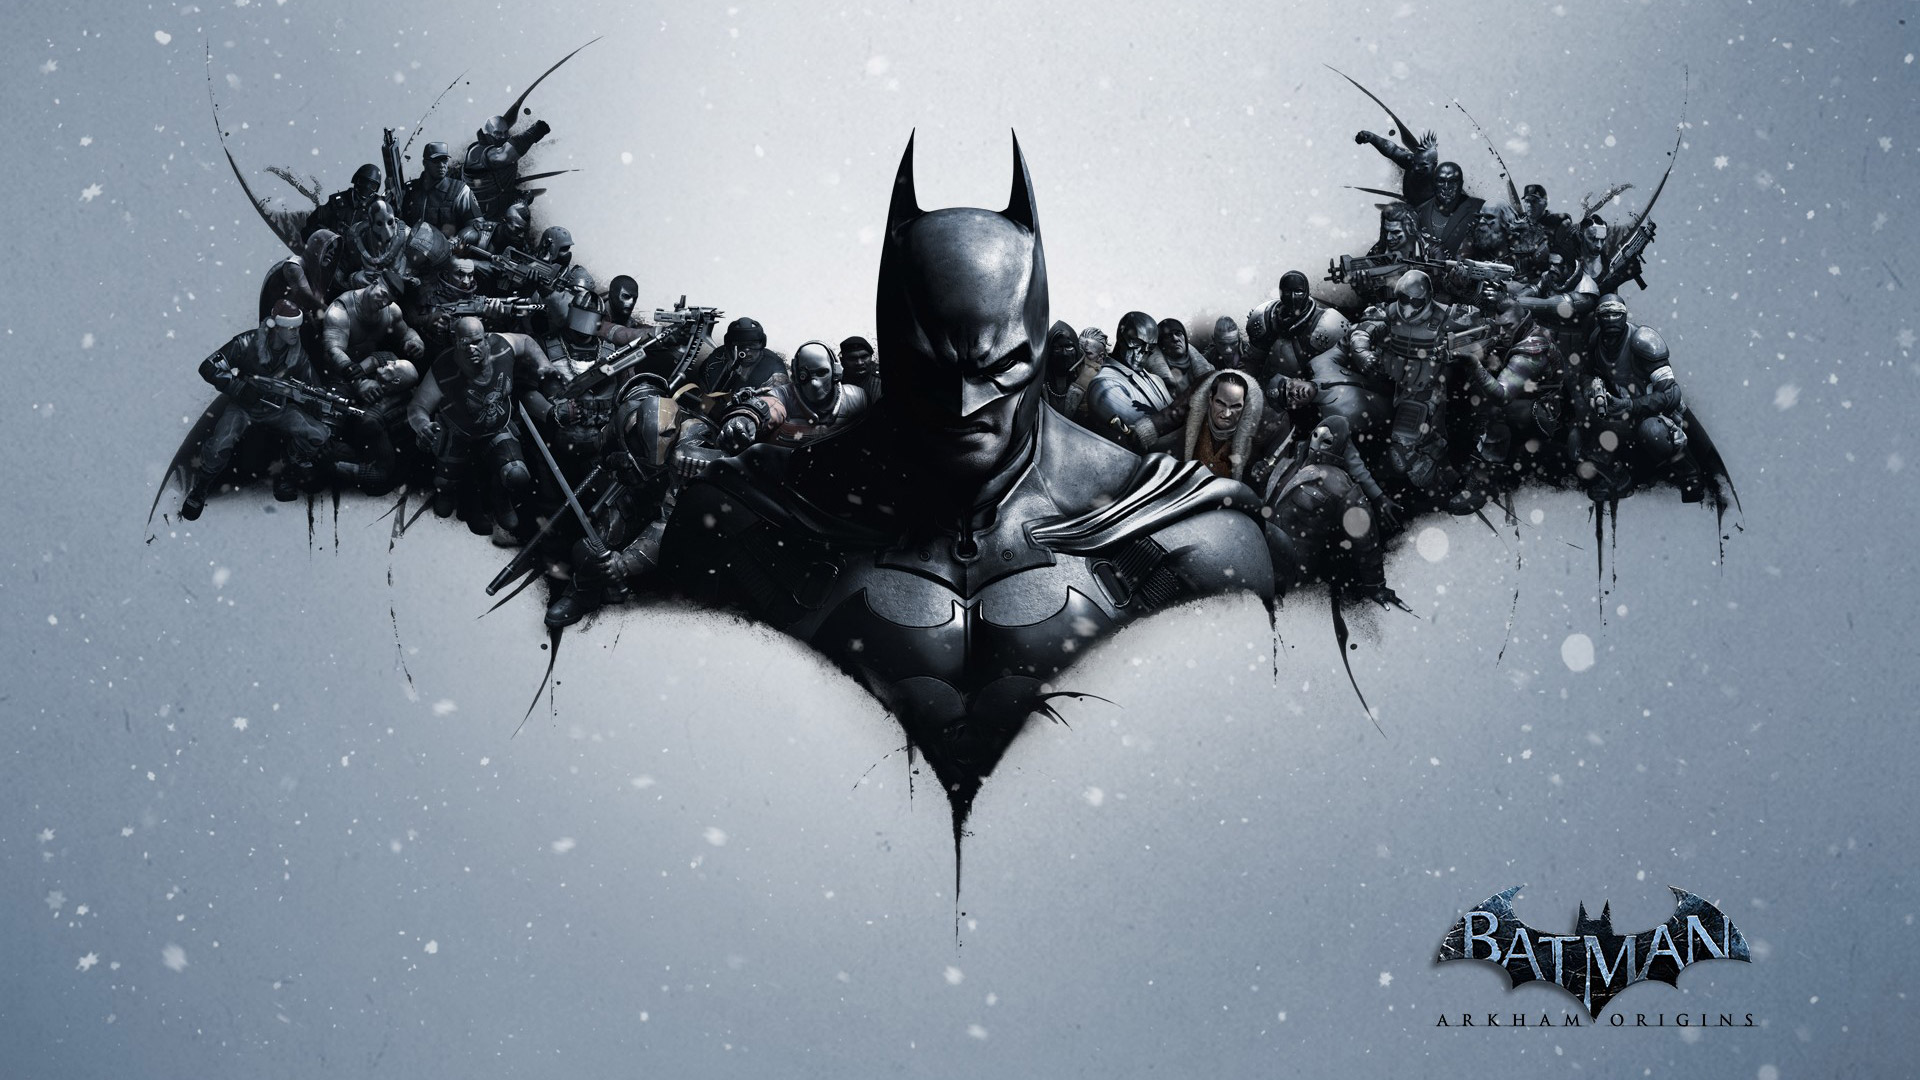 Free Batman: Arkham Origins Wallpaper in 1920x1080